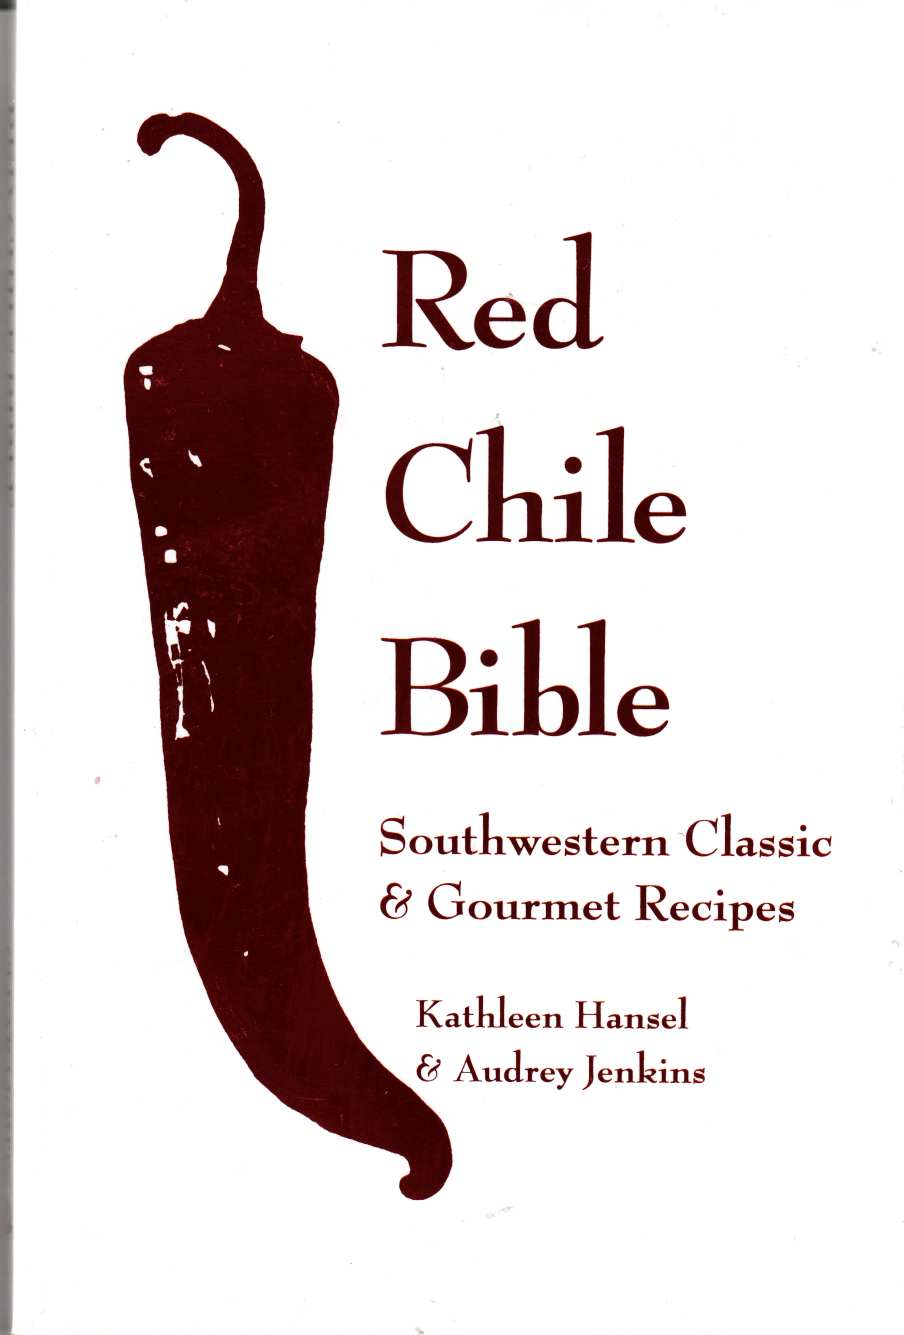 Image for Red Chile Bible Southwestern Classic & Gourmet Recipes